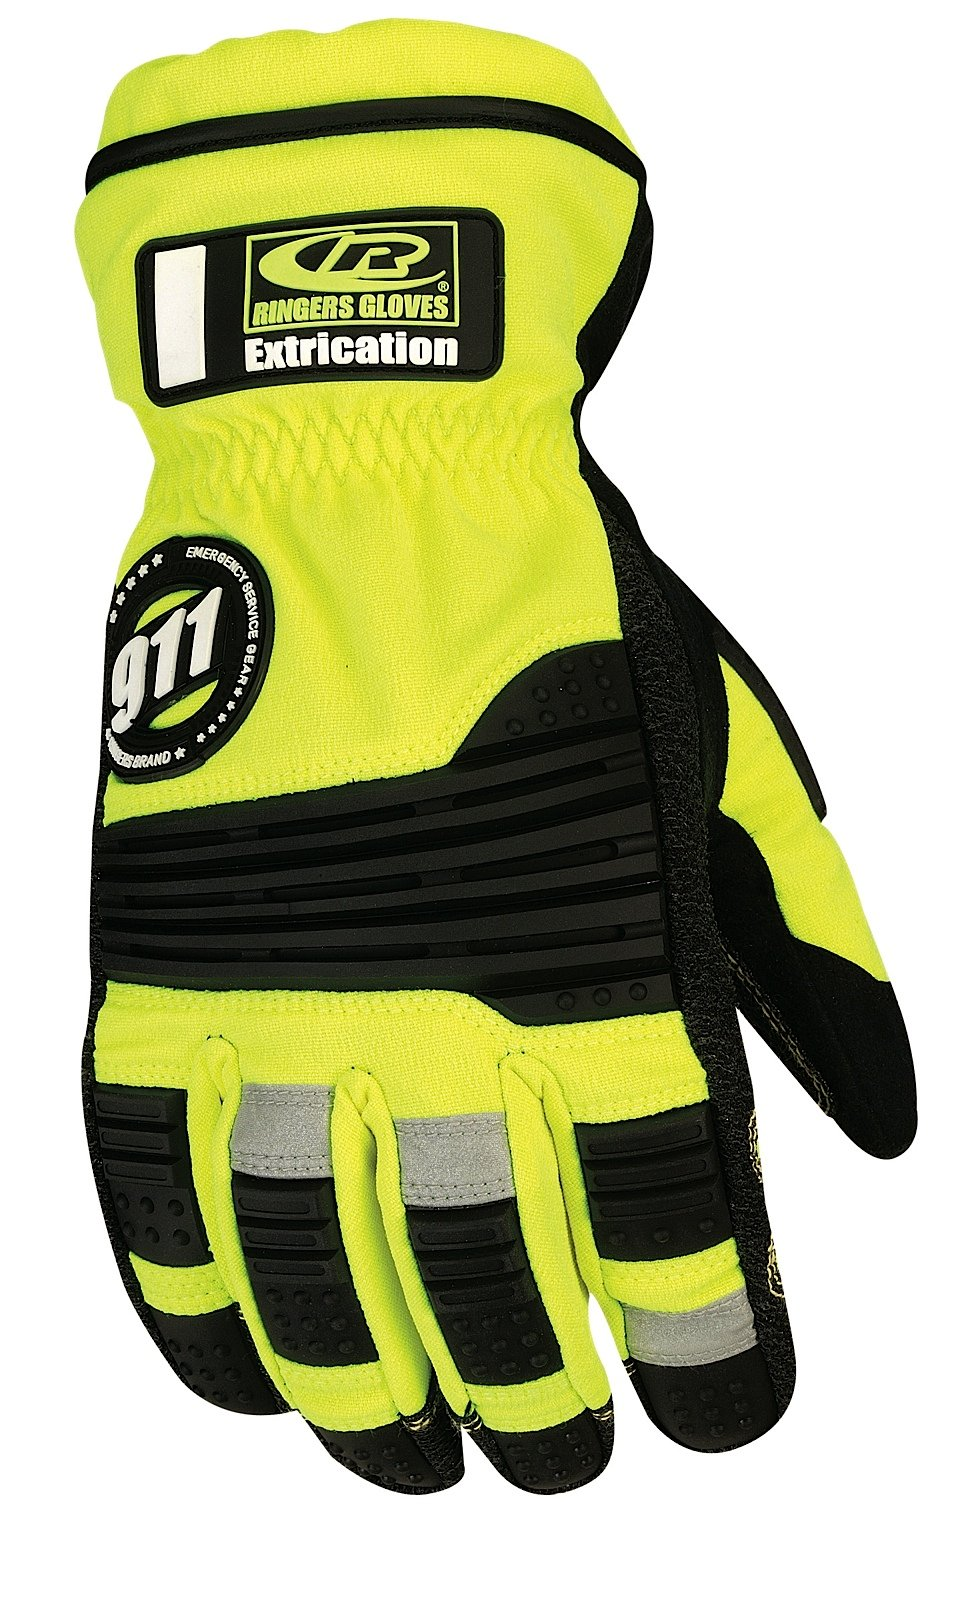 Ringers Gloves R-327 Extrication Barrier1, Heavy Duty Extrication Gloves, X-Large by Ringers Gloves (Image #2)